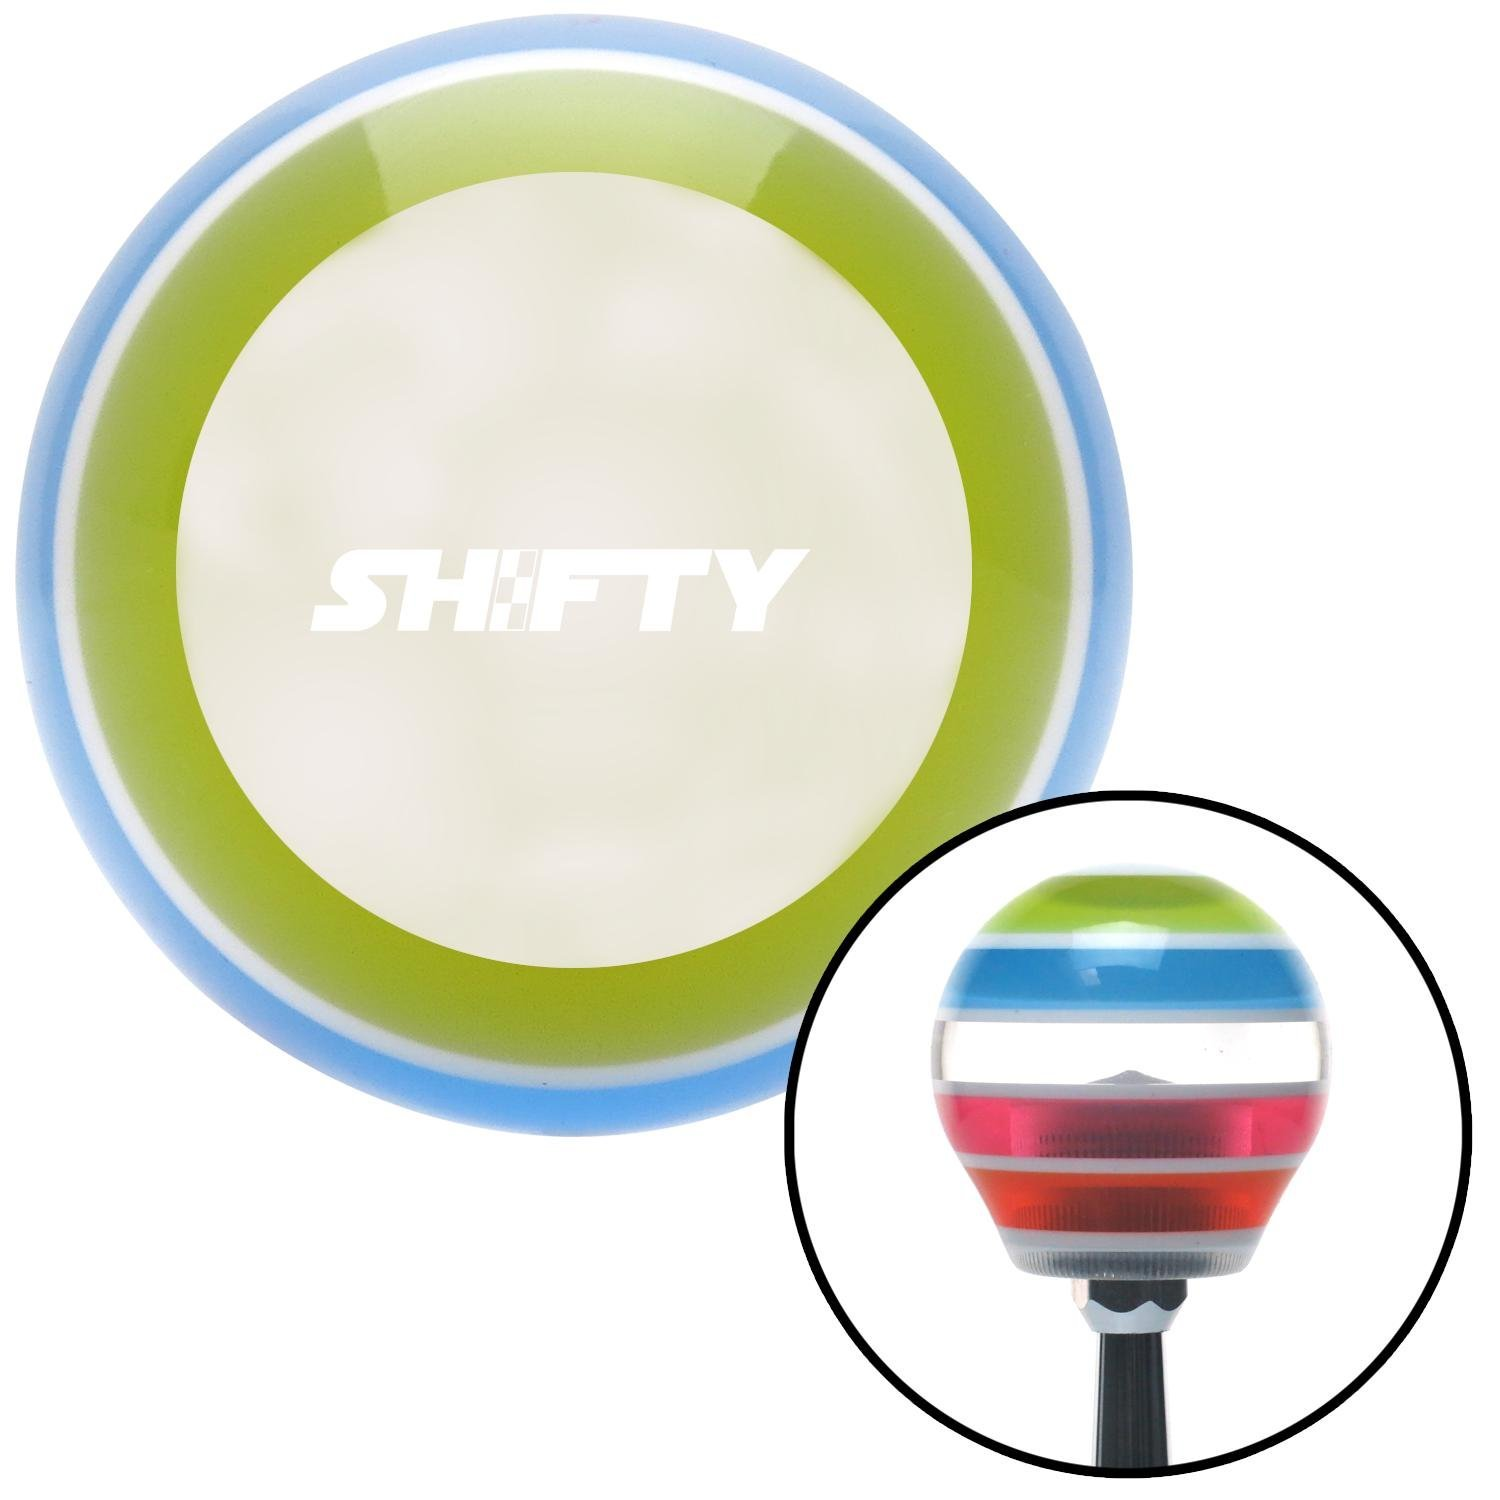 White Shifty American Shifter 137900 Stripe Shift Knob with M16 x 1.5 Insert